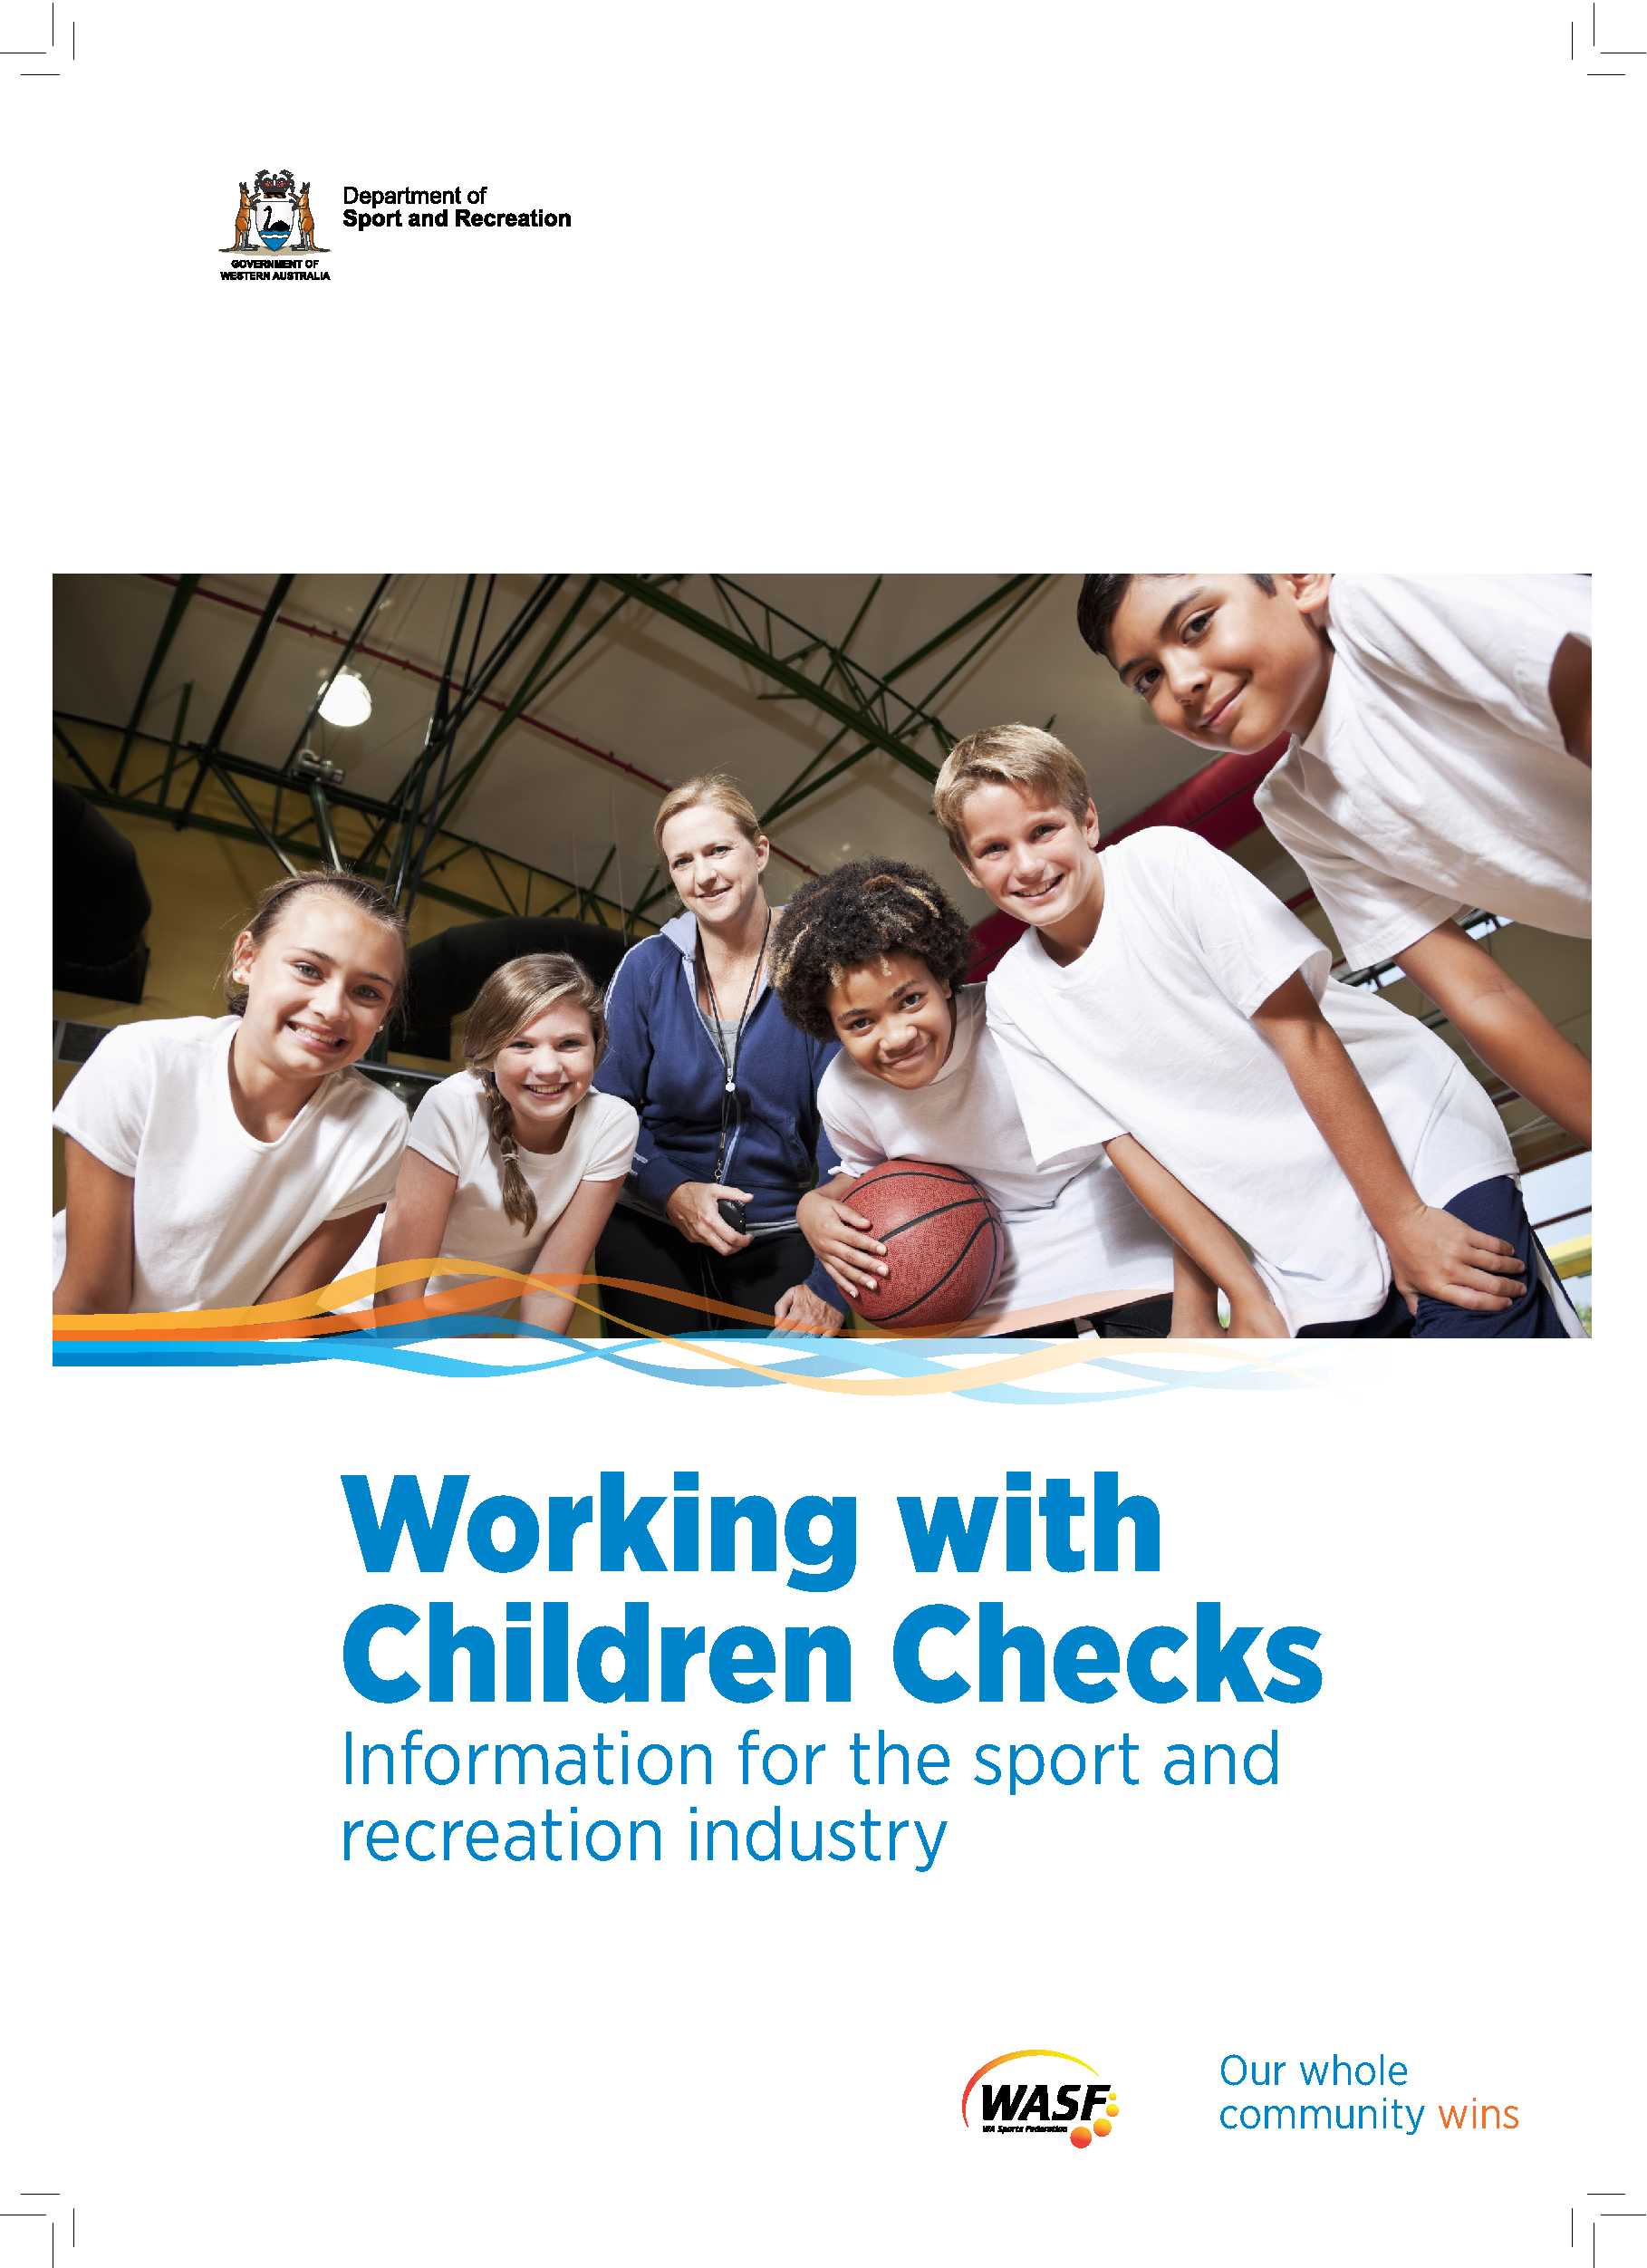 Working with Childrens Check